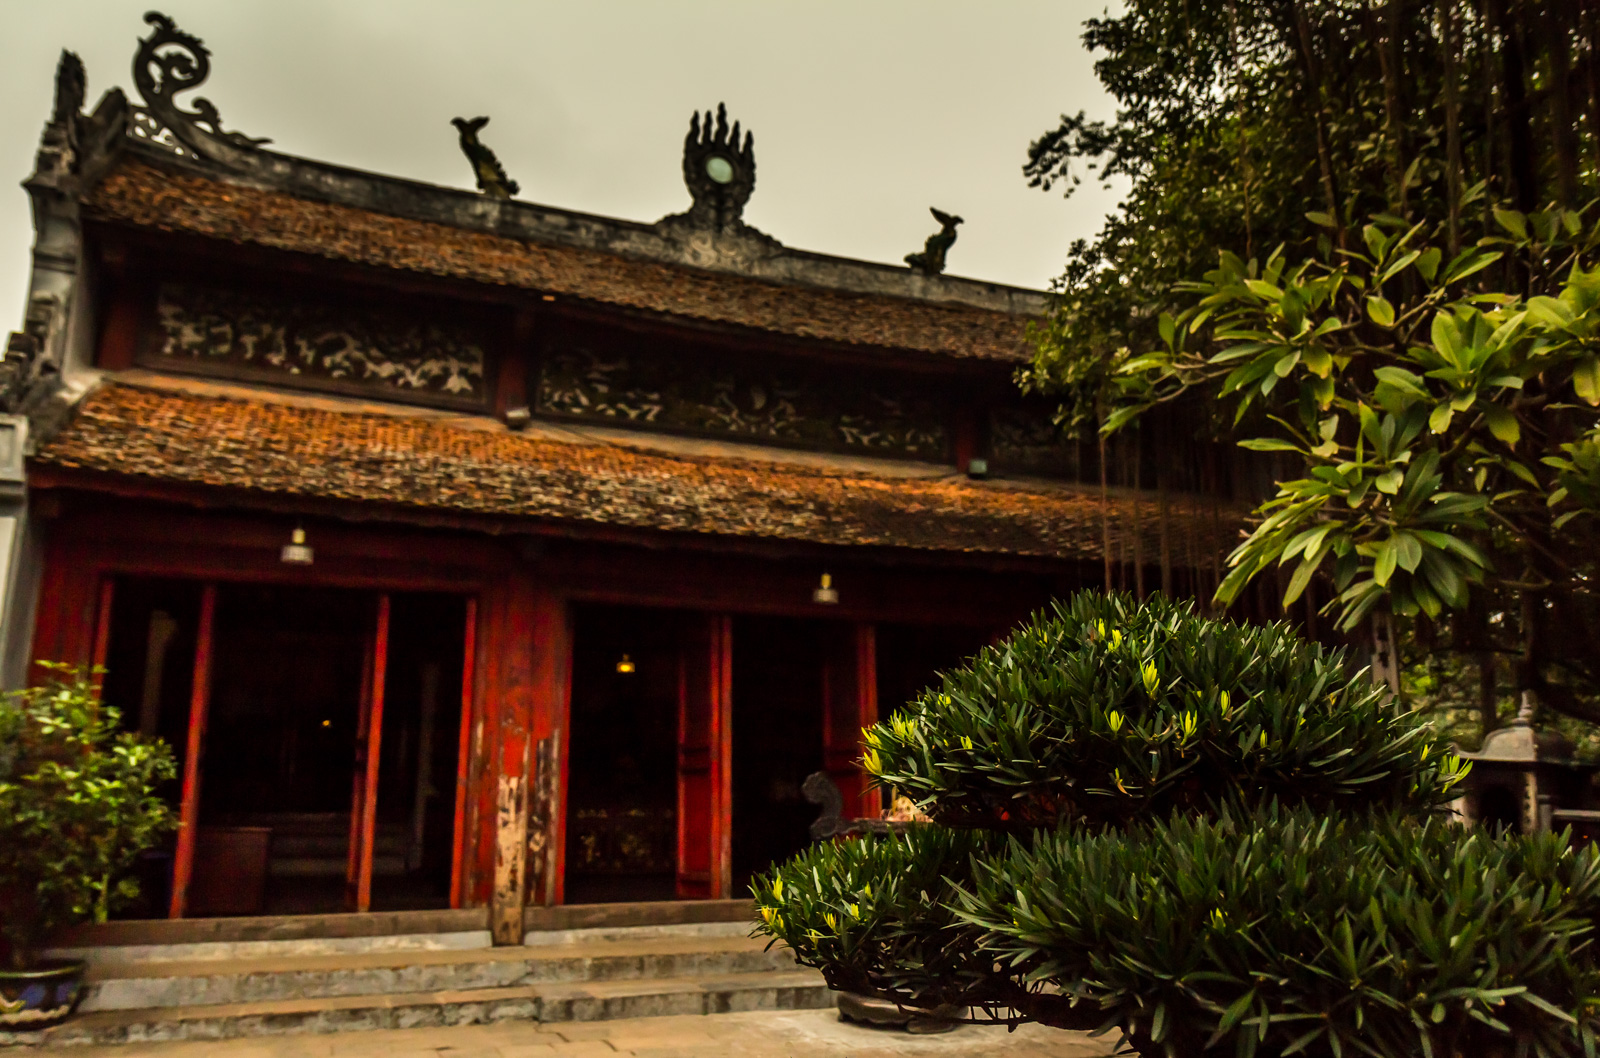 Another view of Ngoc Son Temple.